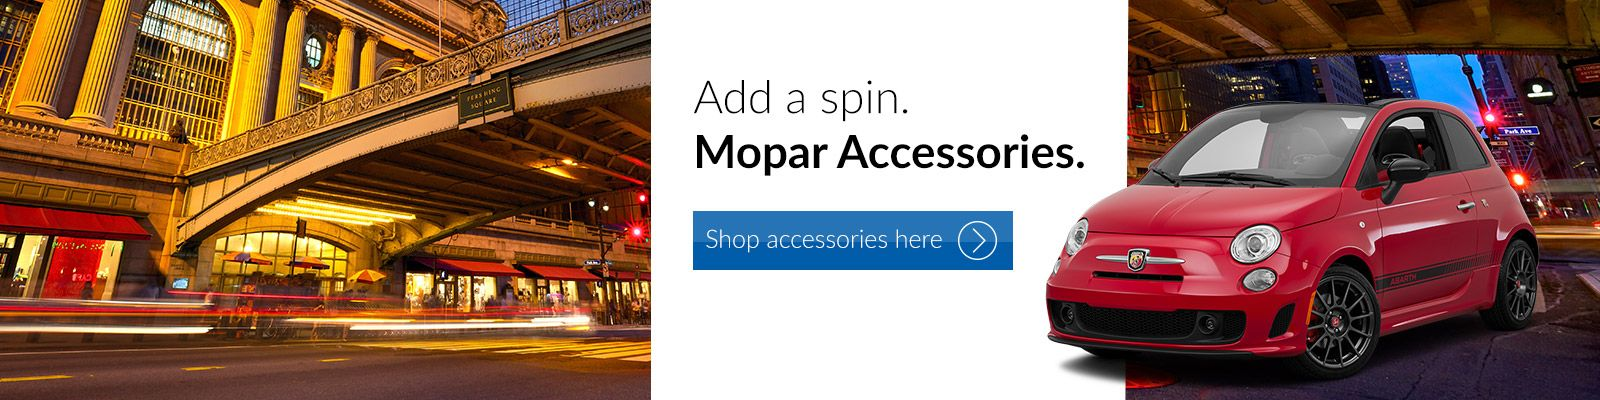 Shop Mopar accessories